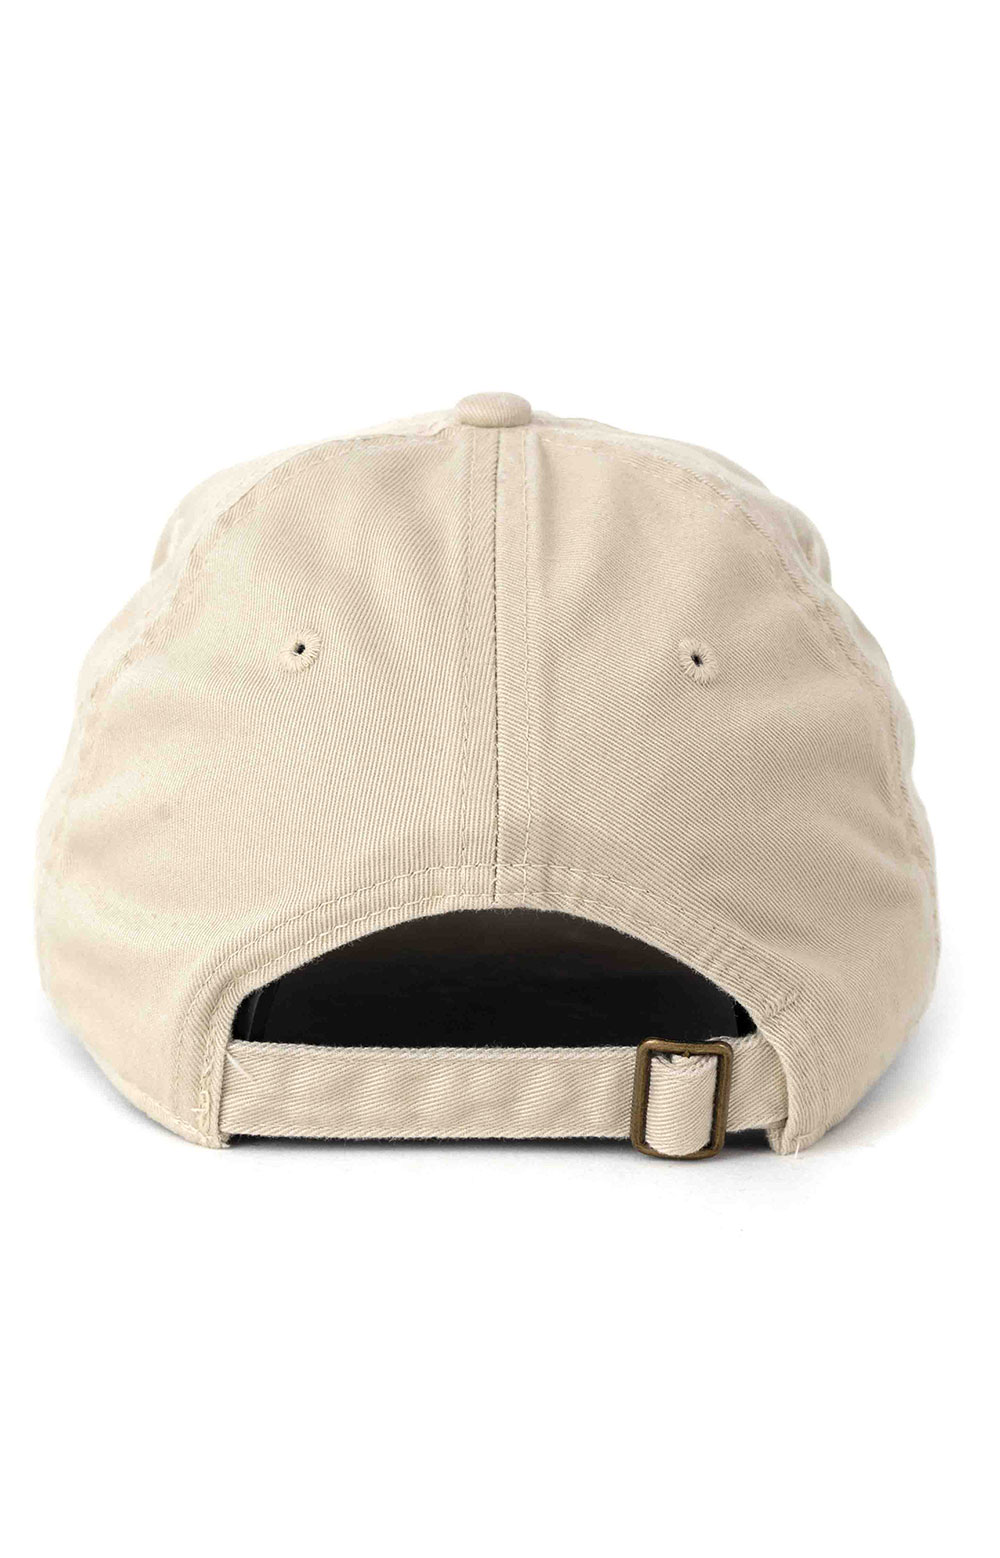 Follow Your Heart Dad Hat - Oyster  3